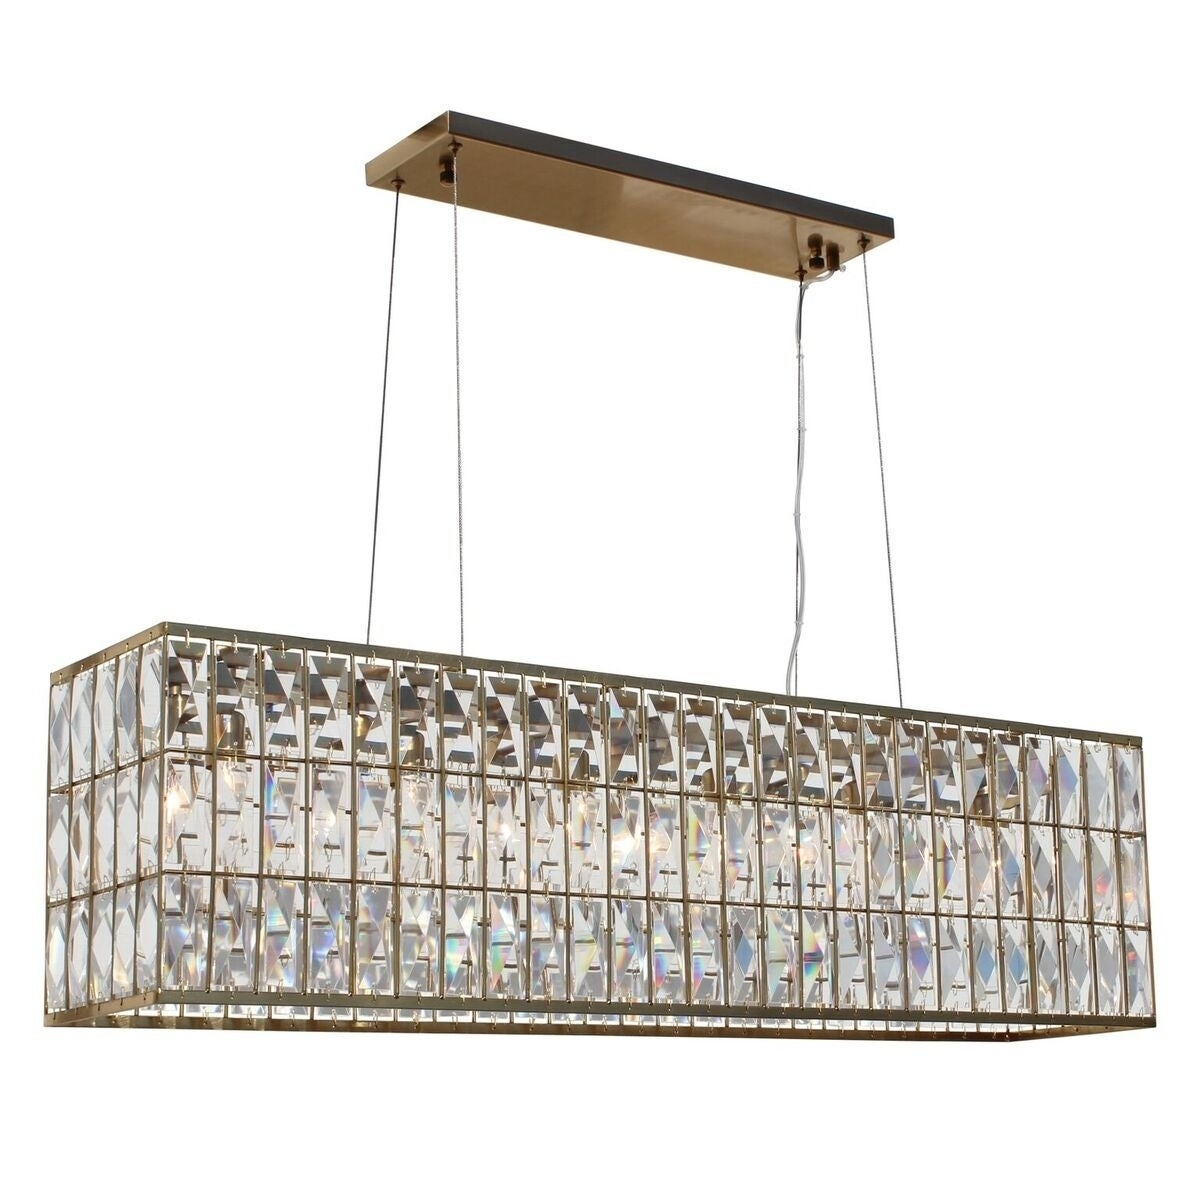 The monroe rectangular clear crystal chandelier brass finish n a